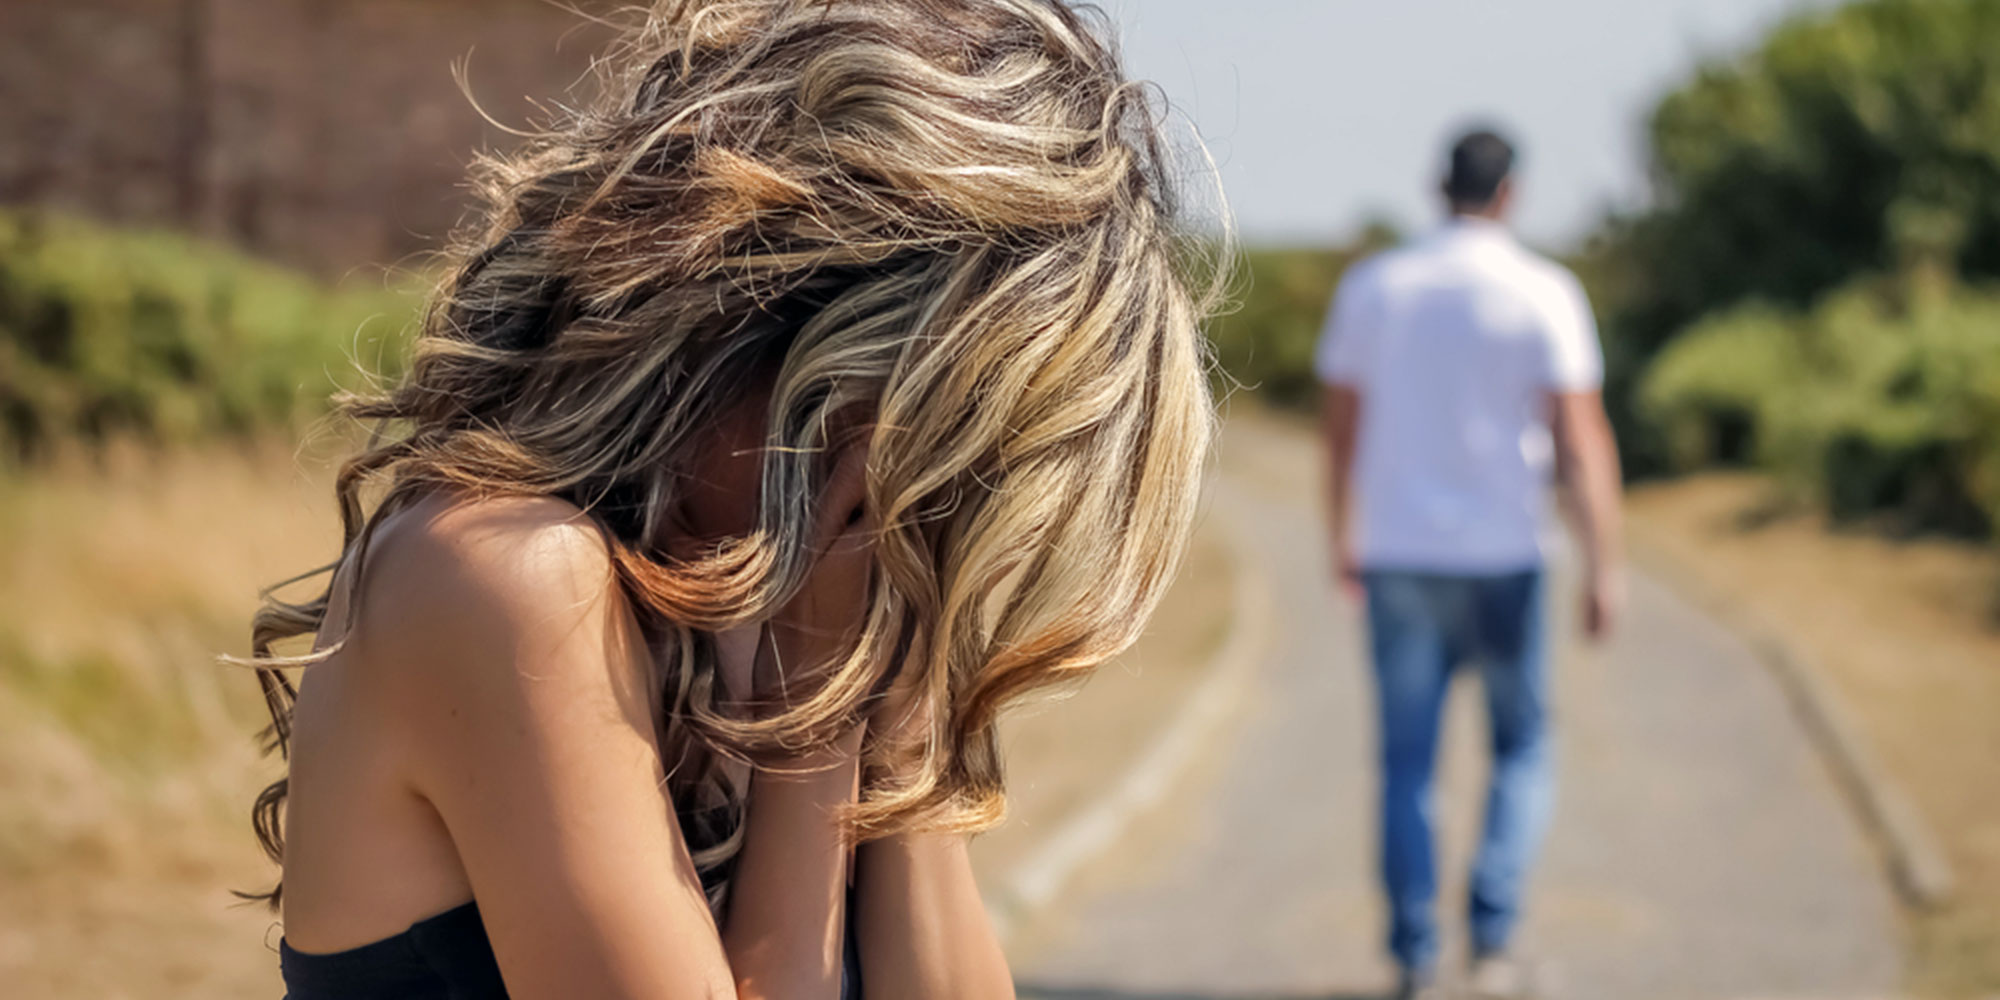 Dating Tips Part Three: Signs you should dump who you're dating